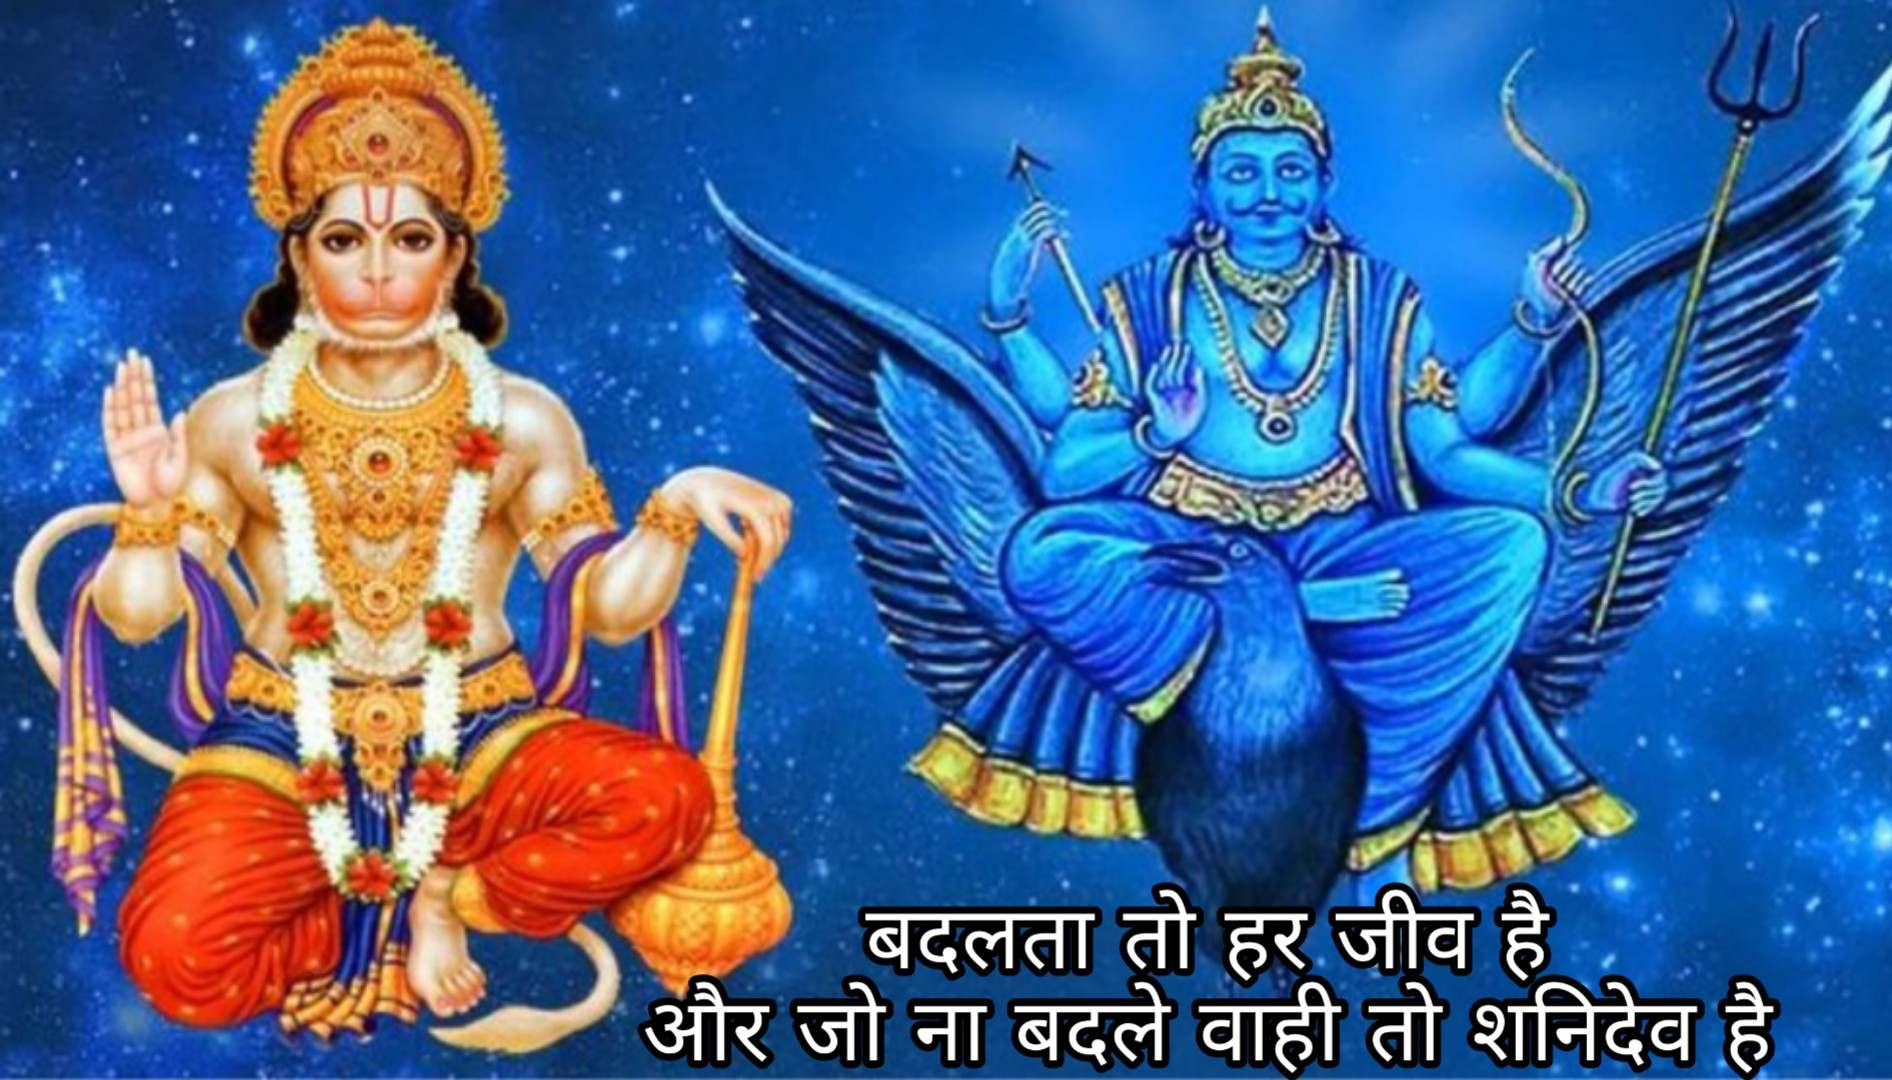 Shani Dev shayari quotes messages images